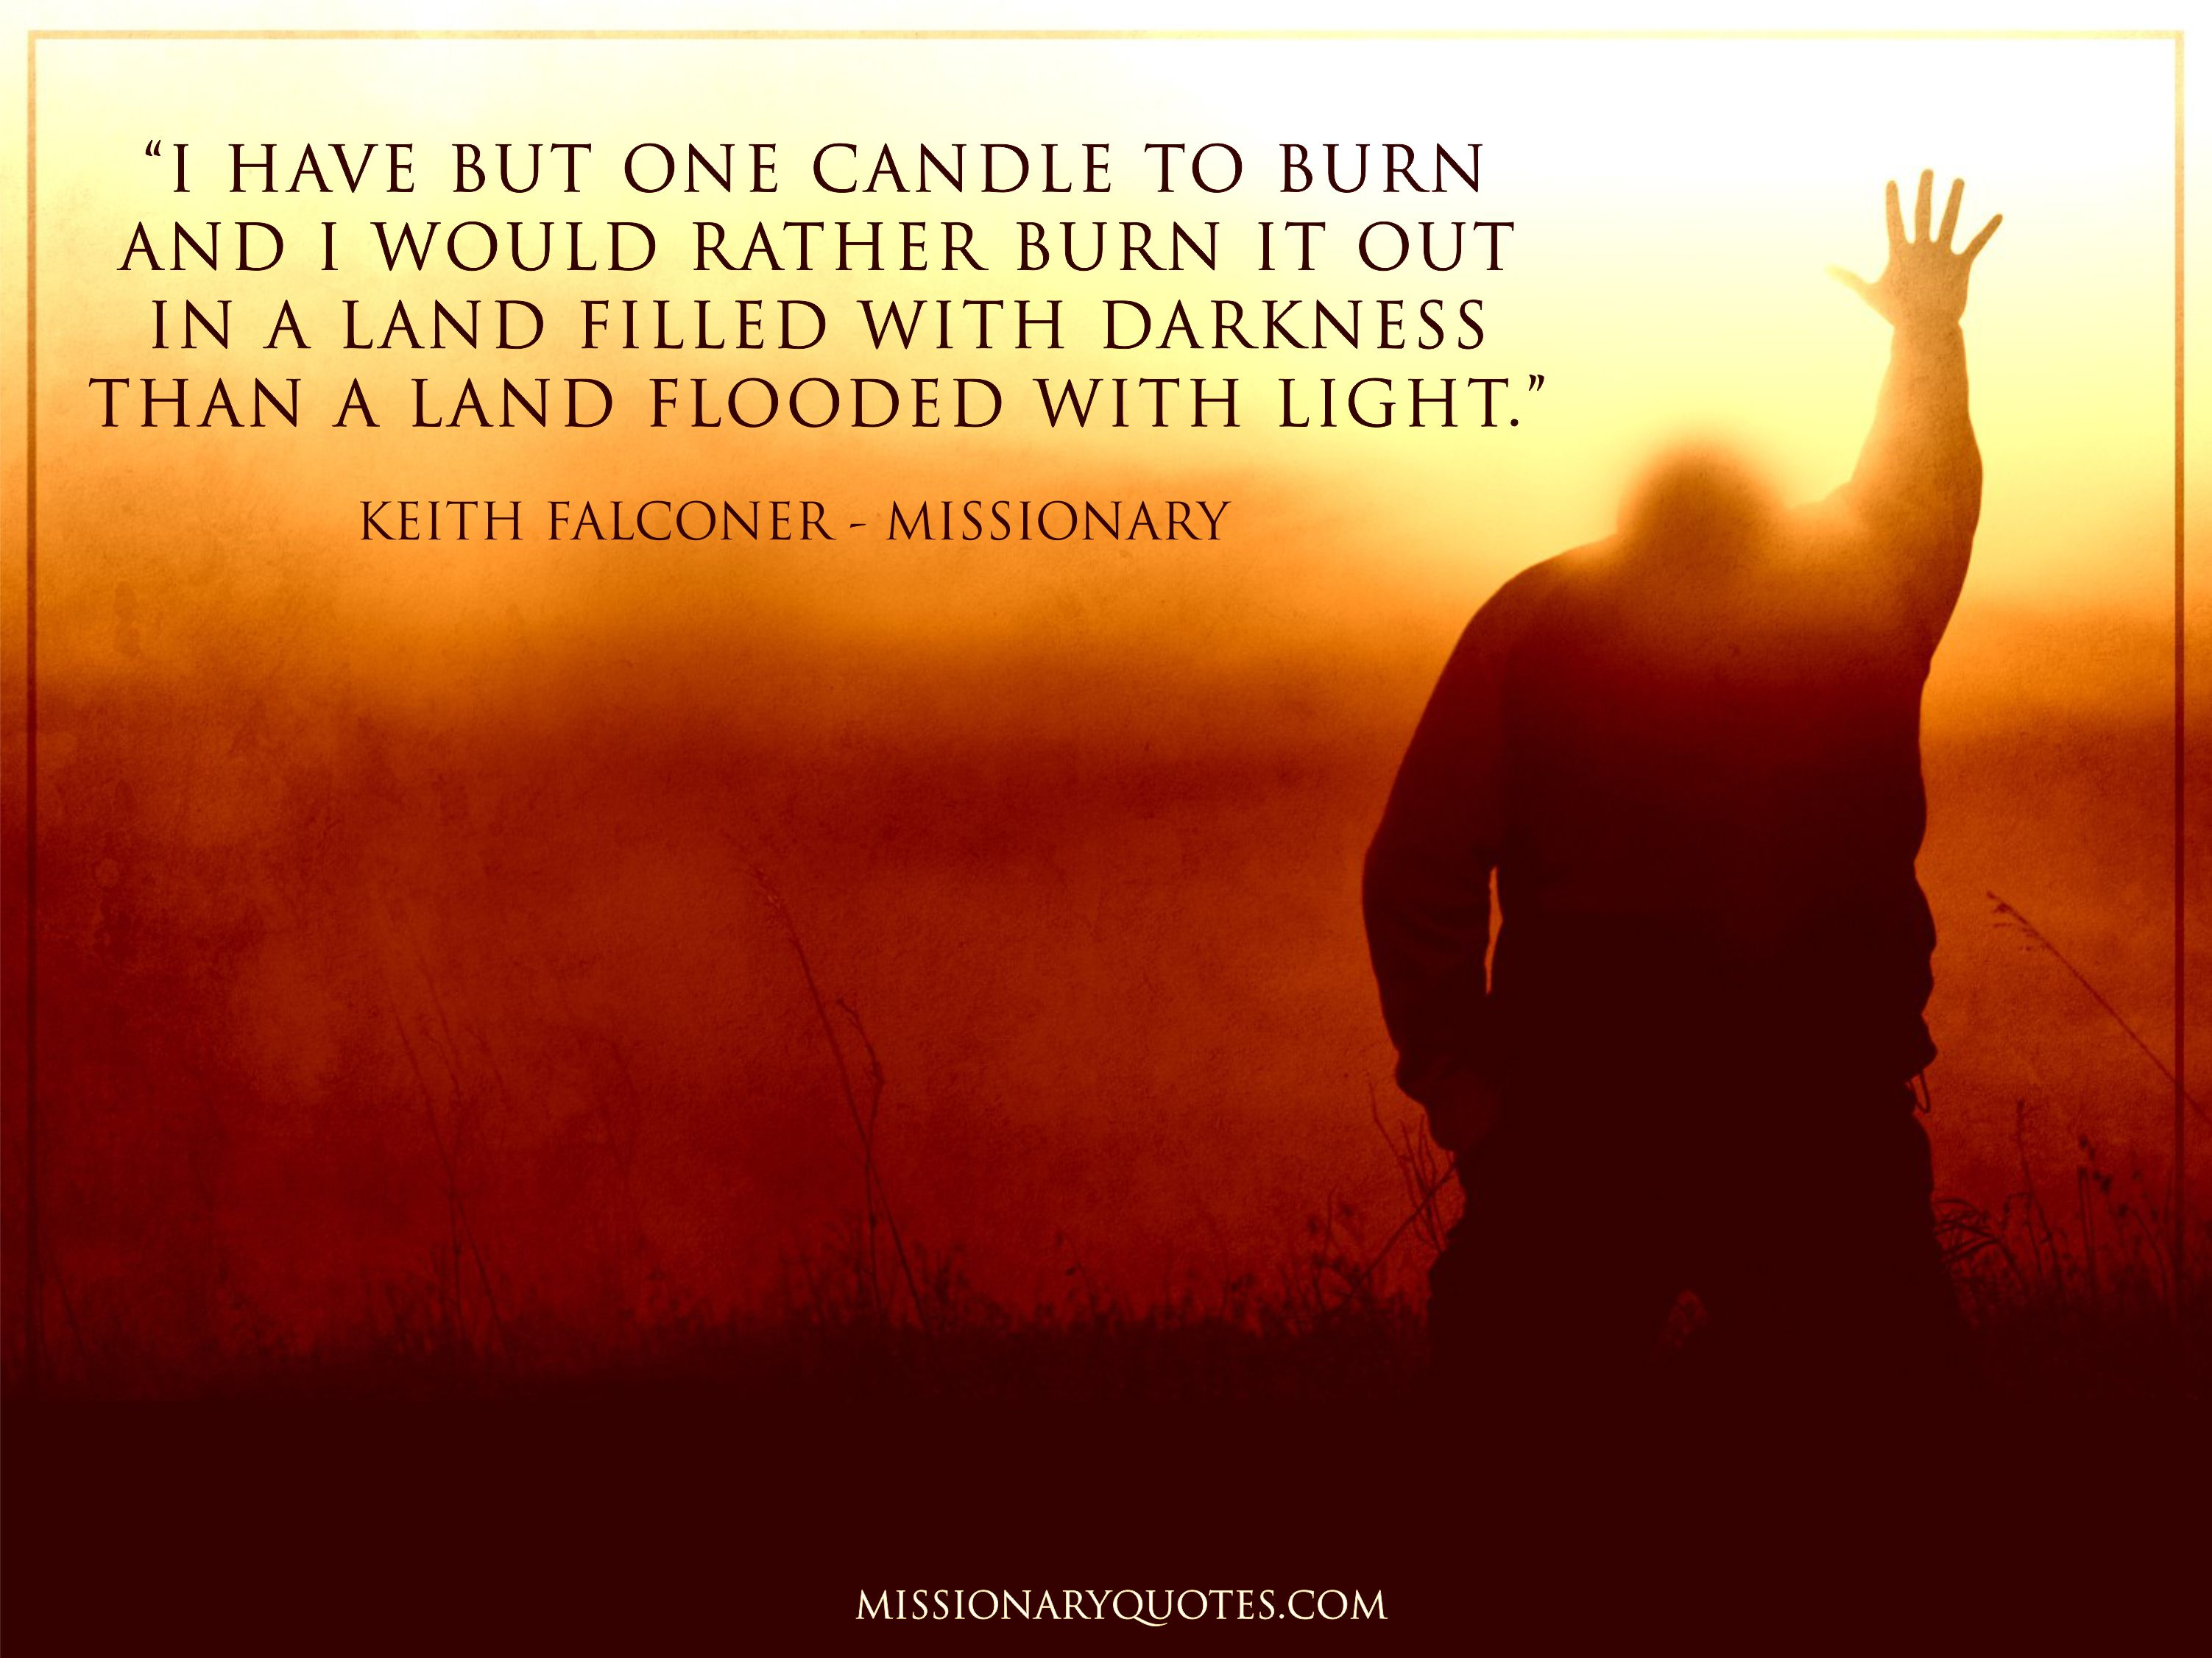 I Have But One Candle to Burn - Keith Falconer